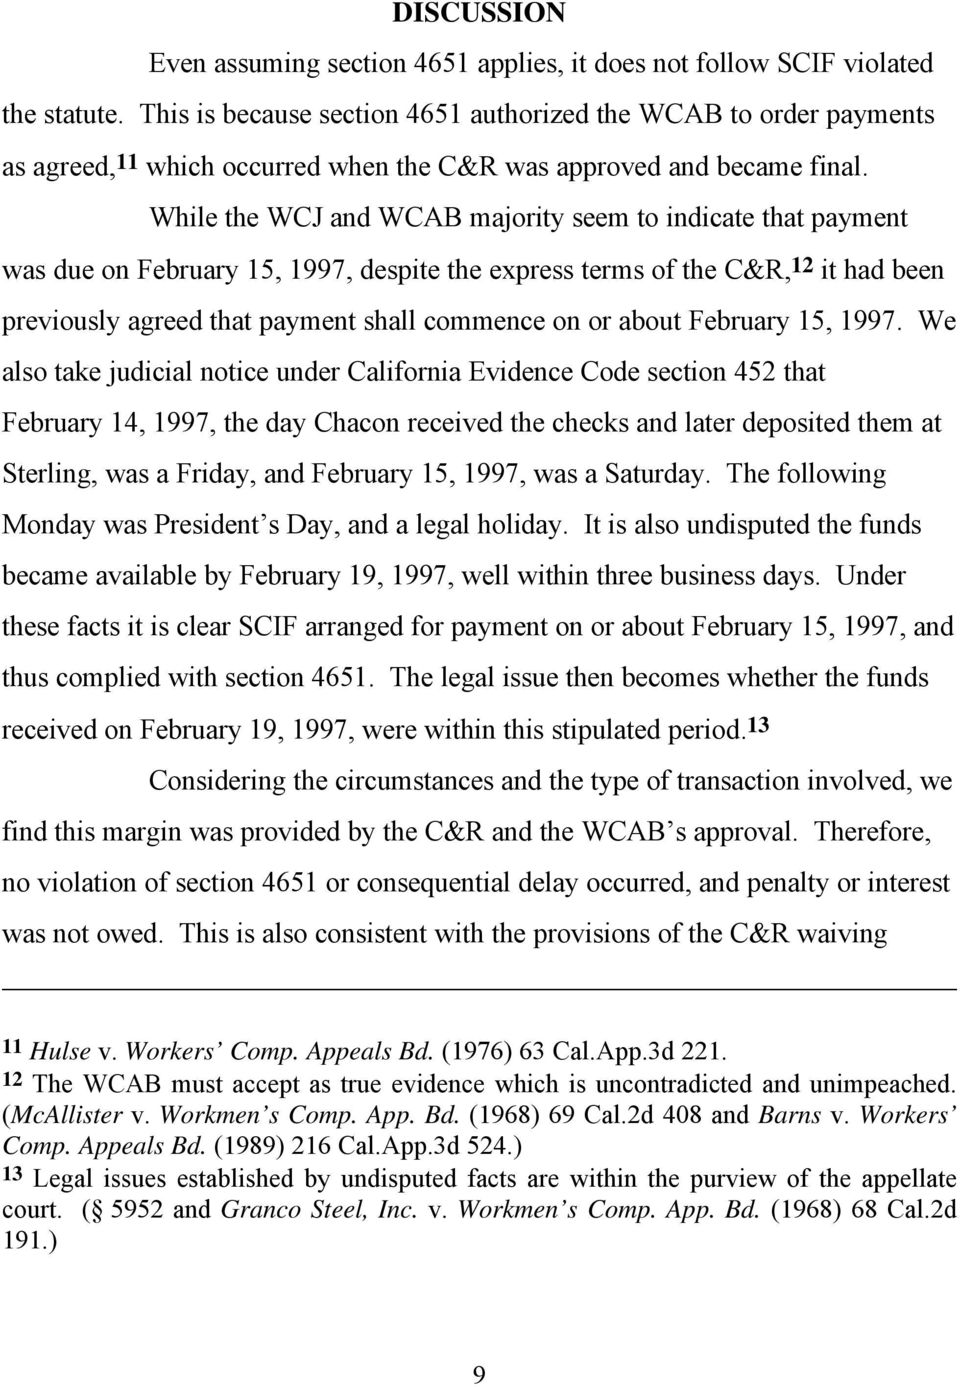 While the WCJ and WCAB majority seem to indicate that payment was due on February 15, 1997, despite the express terms of the C&R, 12 it had been previously agreed that payment shall commence on or